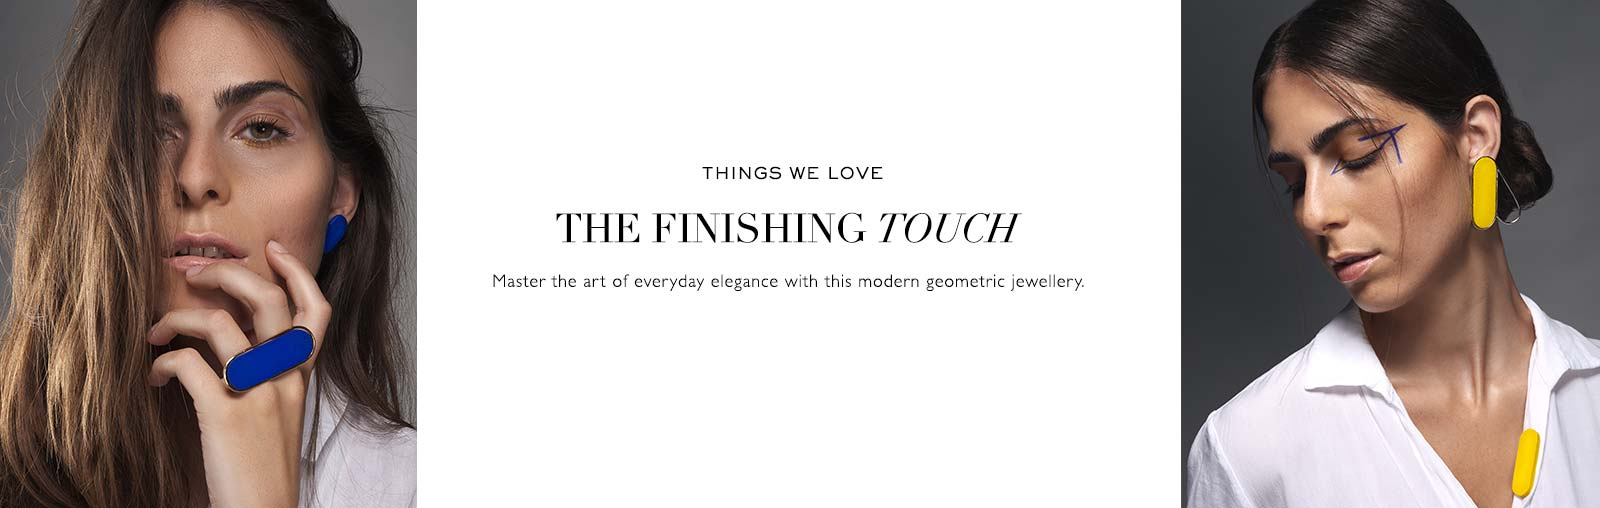 THINGS WE LOVE | THE FINISHING TOUCH | Master the art of everyday elegance with this modern geometric jewellery.